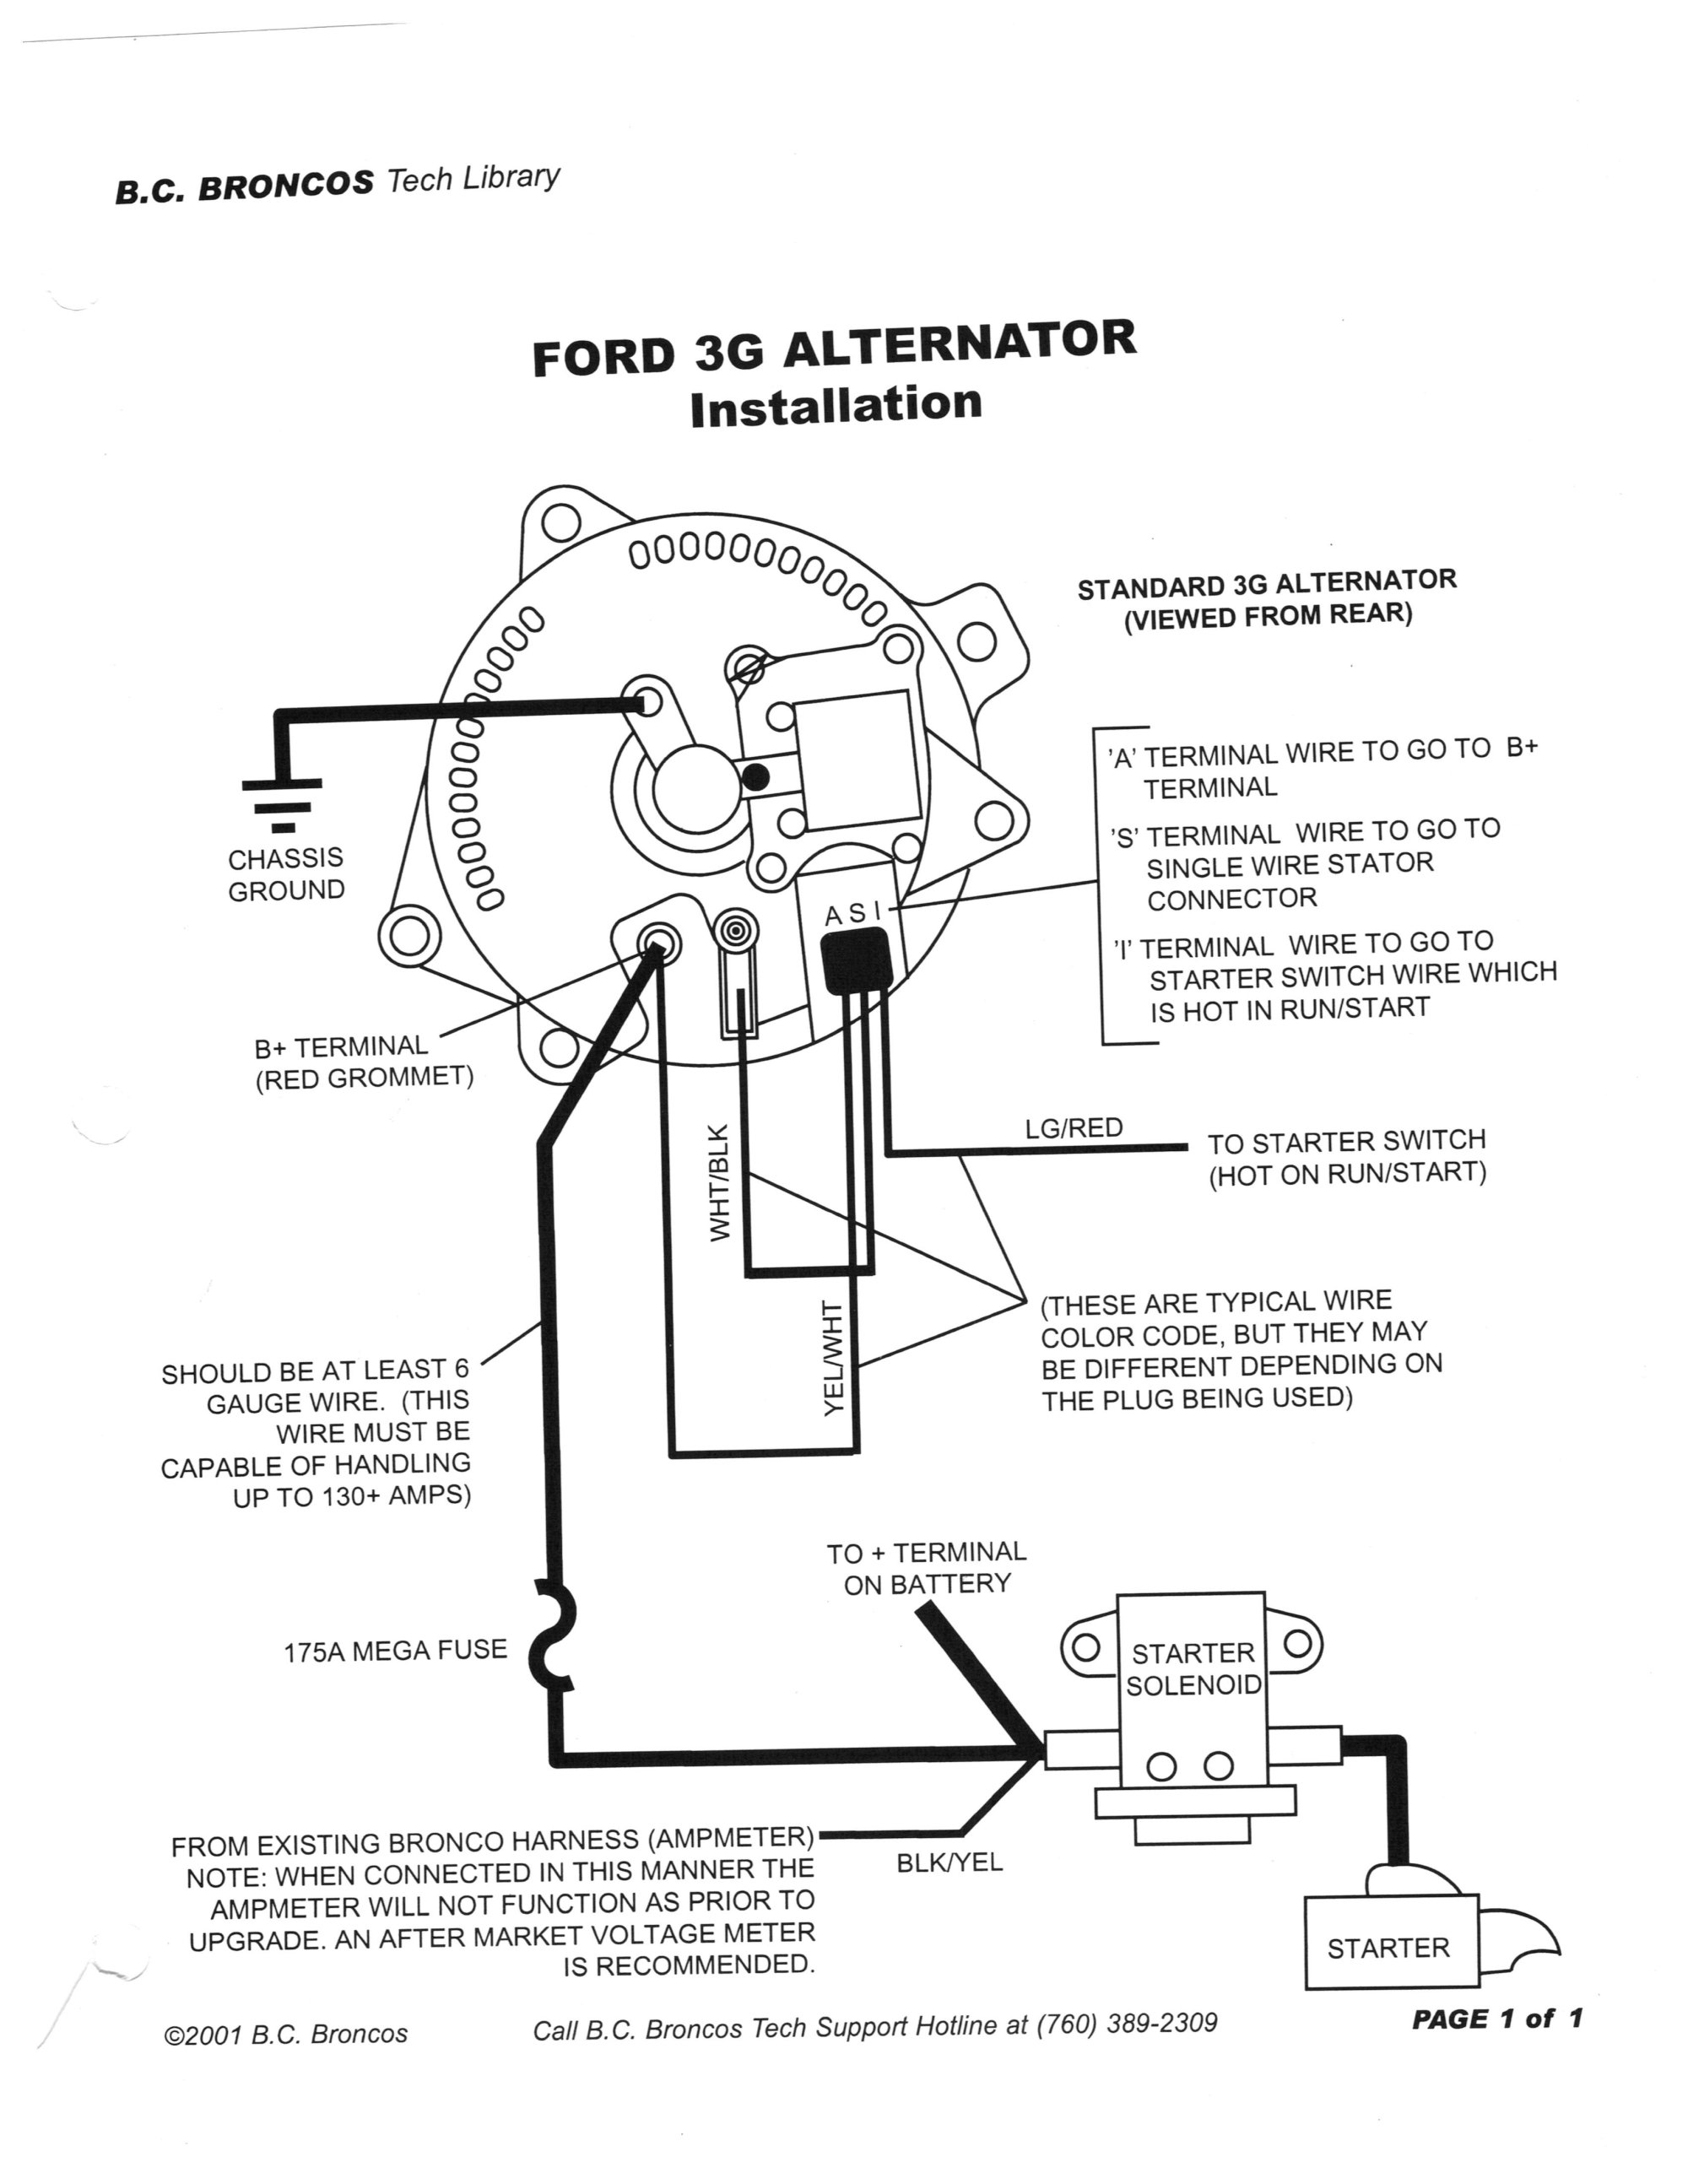 hight resolution of 1993 f150 alternator wiring diagram wiring diagram fascinating 93 ford f 150 alternator wiring connector free download wiring